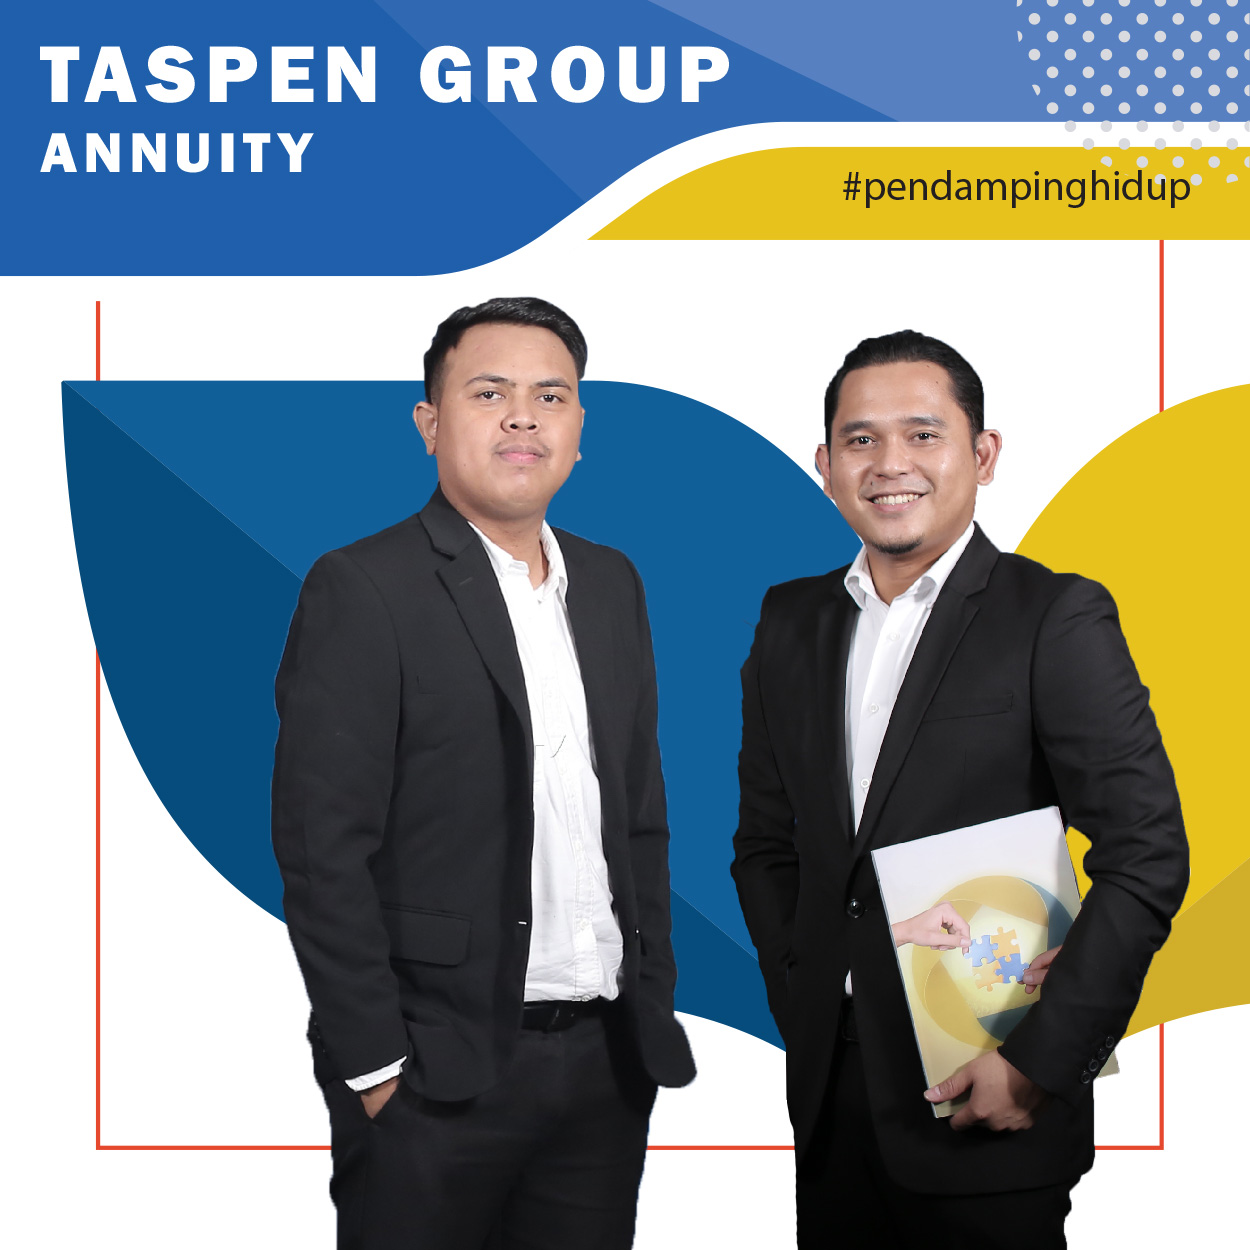 Taspen Group Annuity